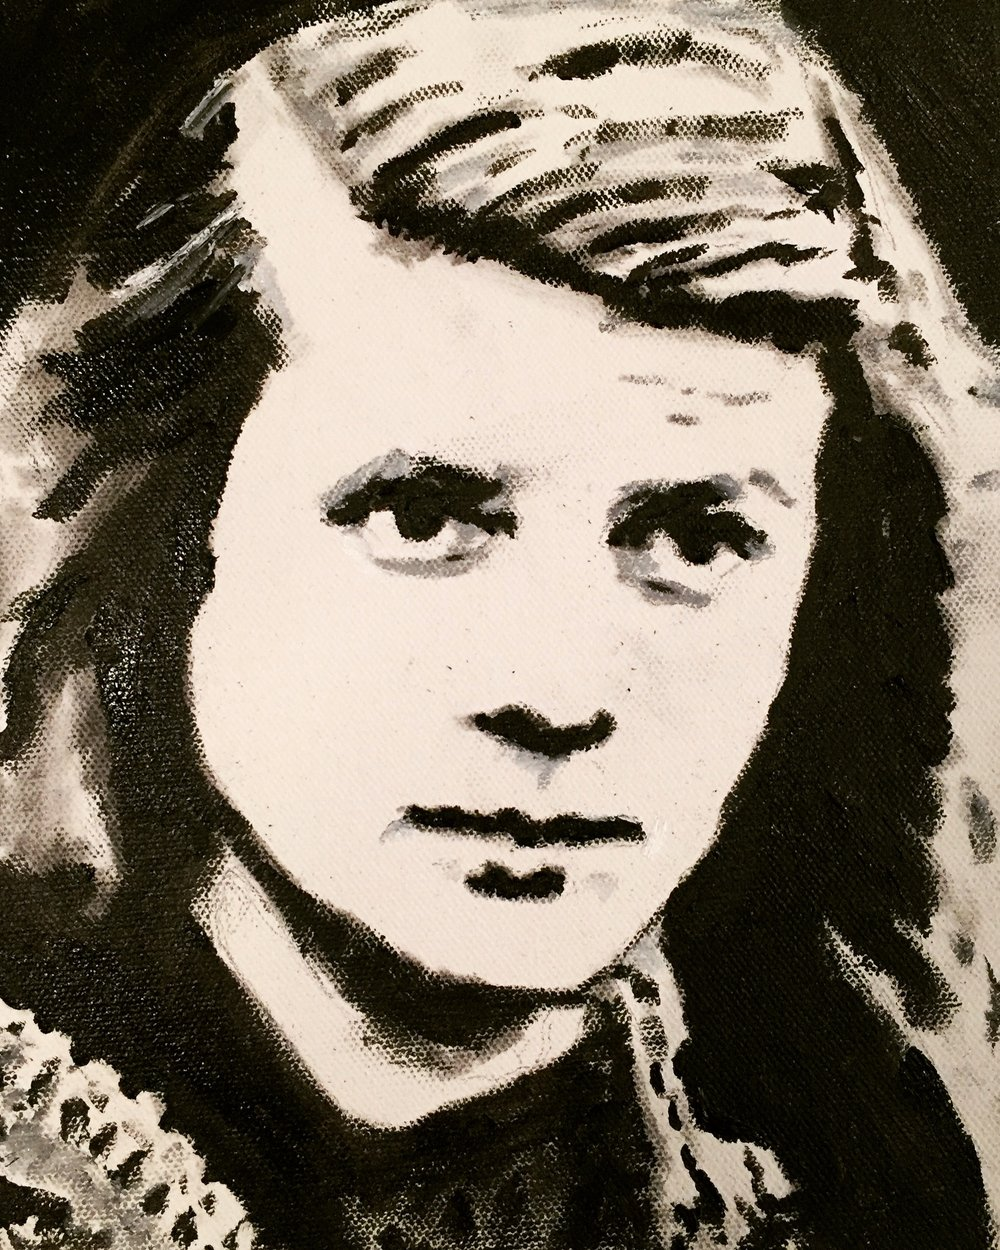 White Rose (Sophie Scholl)